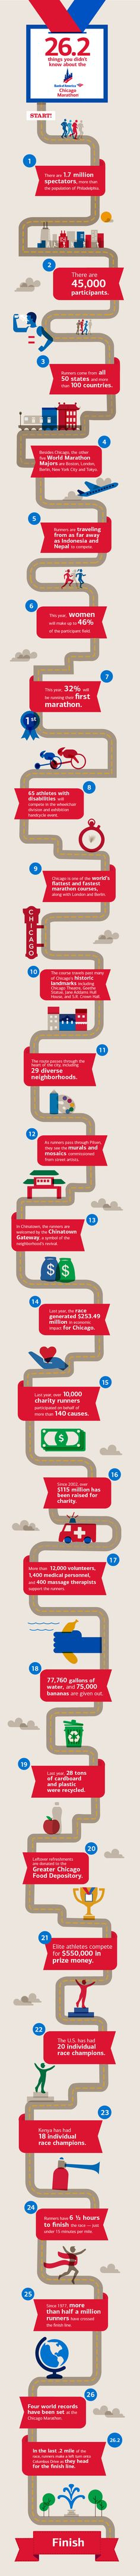 2013 Chicago Marathon Infographic